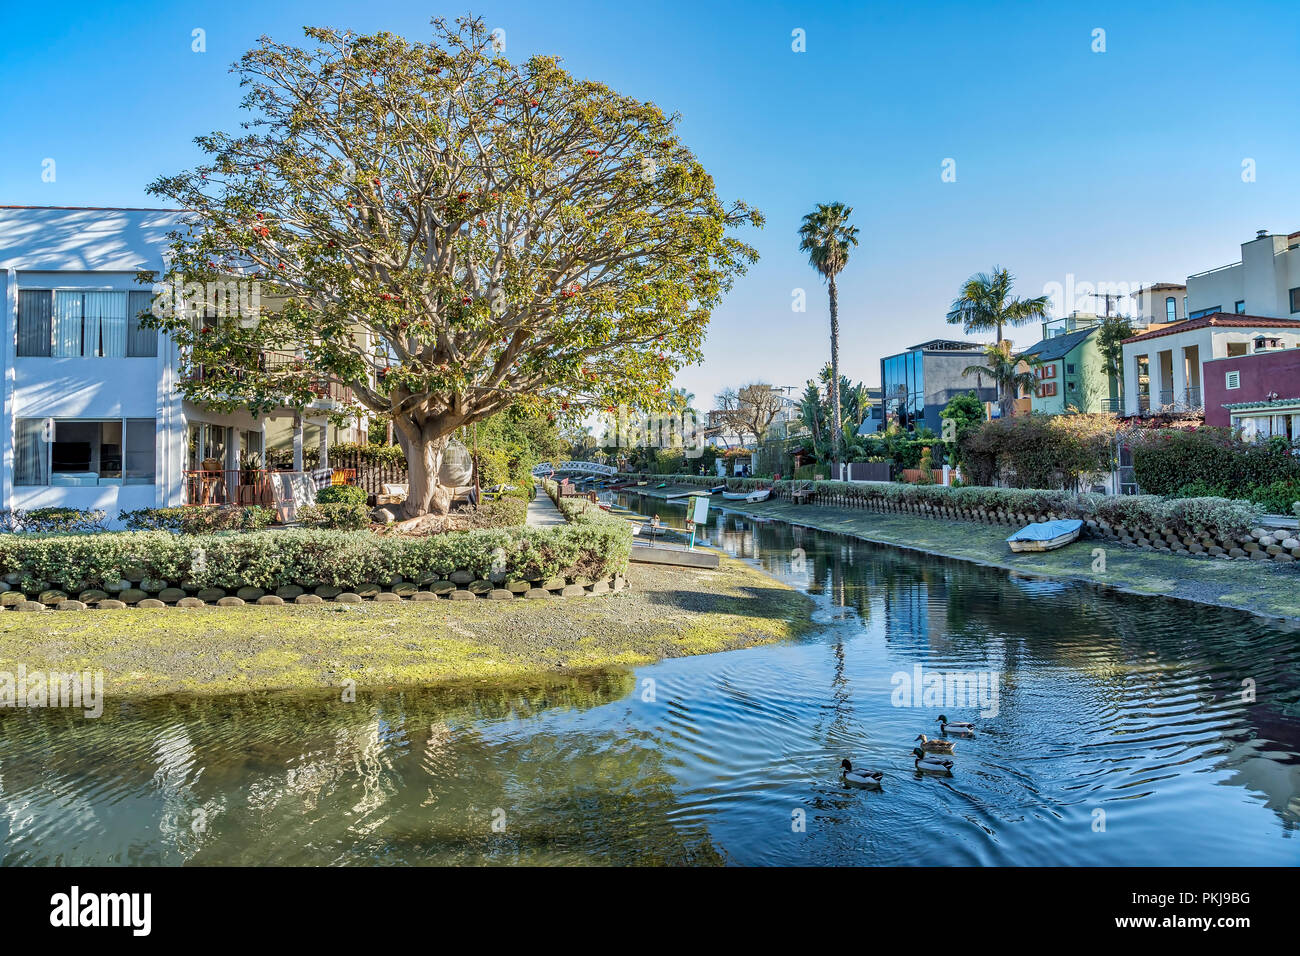 Venice canals in Los Angeles, California - Stock Image